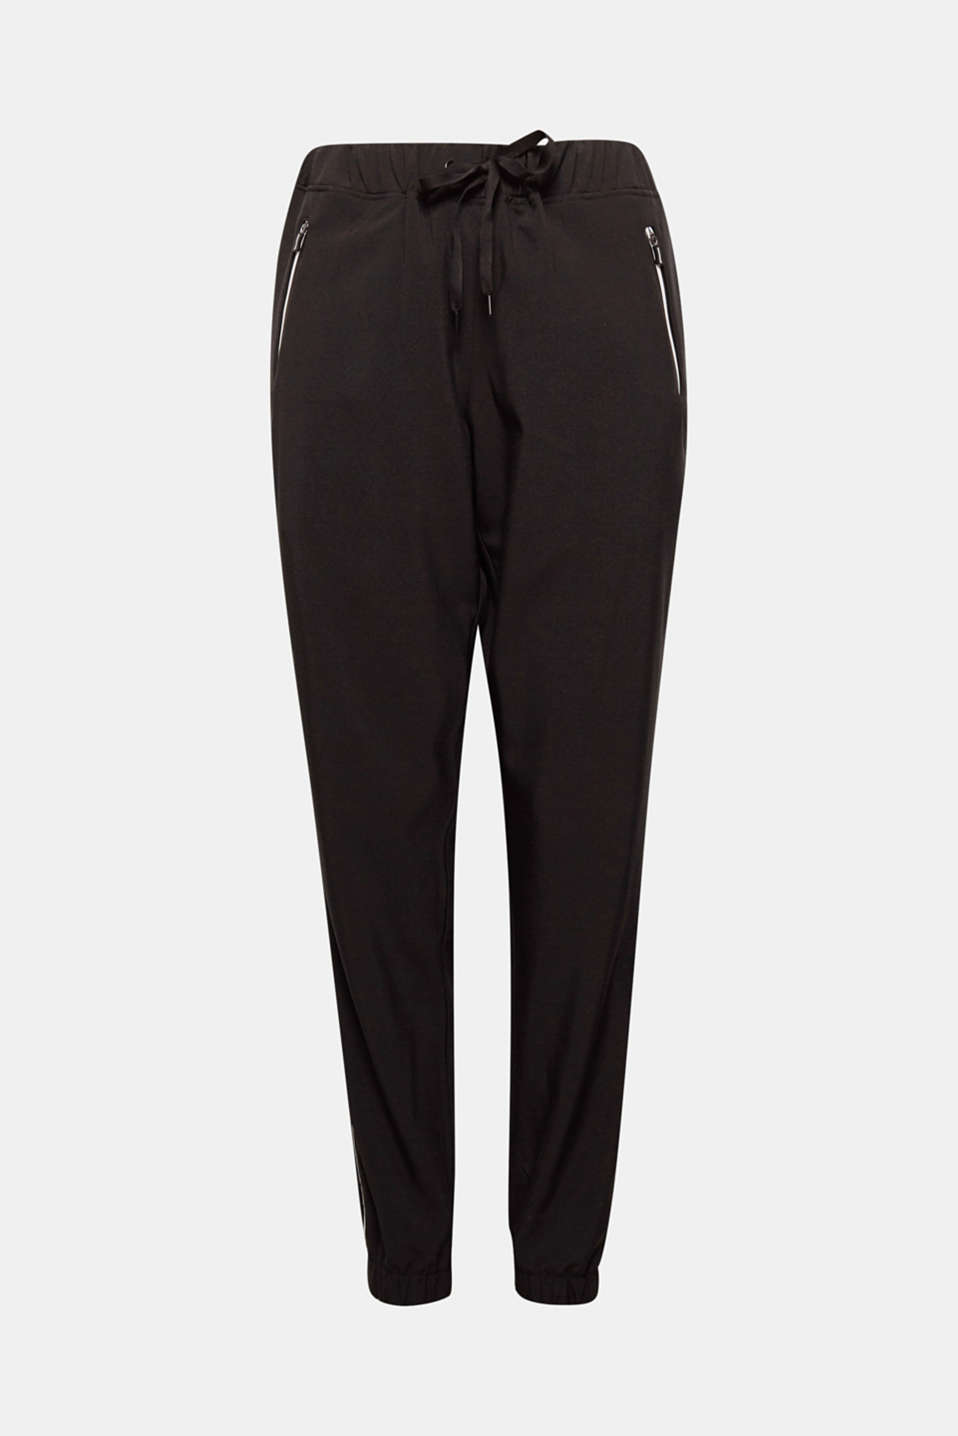 These casual woven trousers make your look super relaxed with E-DRY technology and reflective piping!